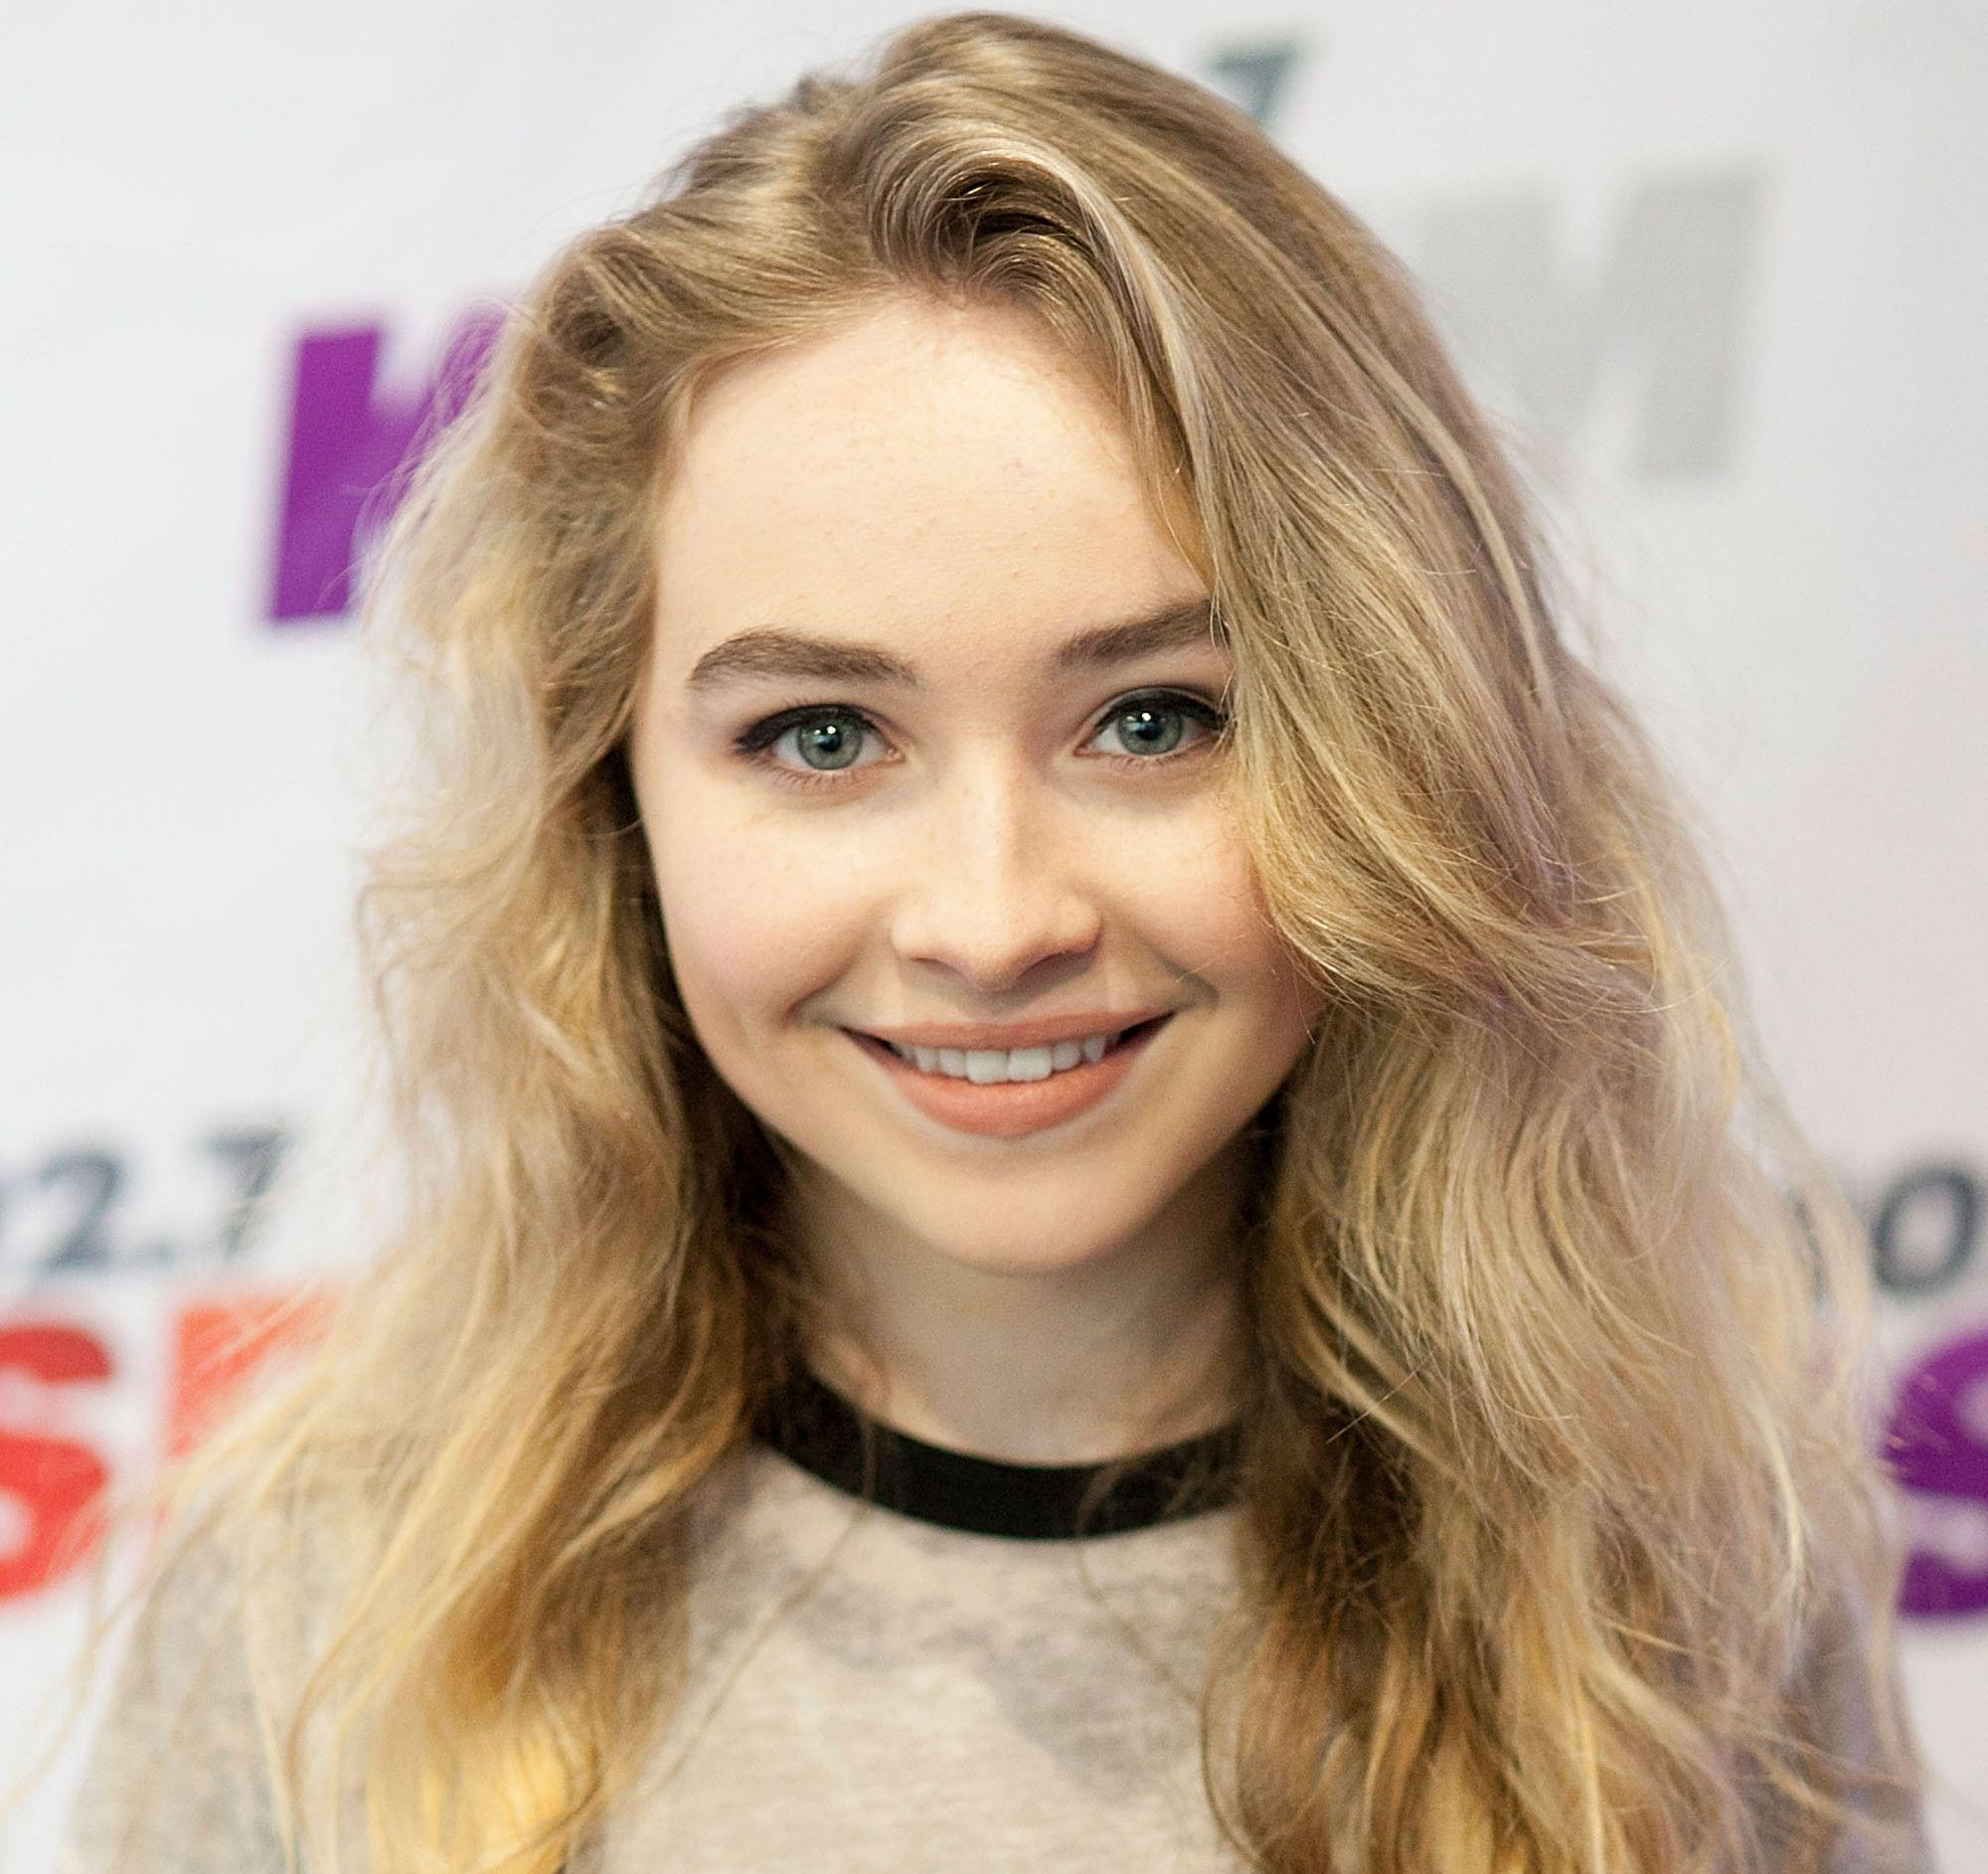 Sabrina carpenter wallpapers wallpaper cave - Sabrina carpenter hd wallpaper ...